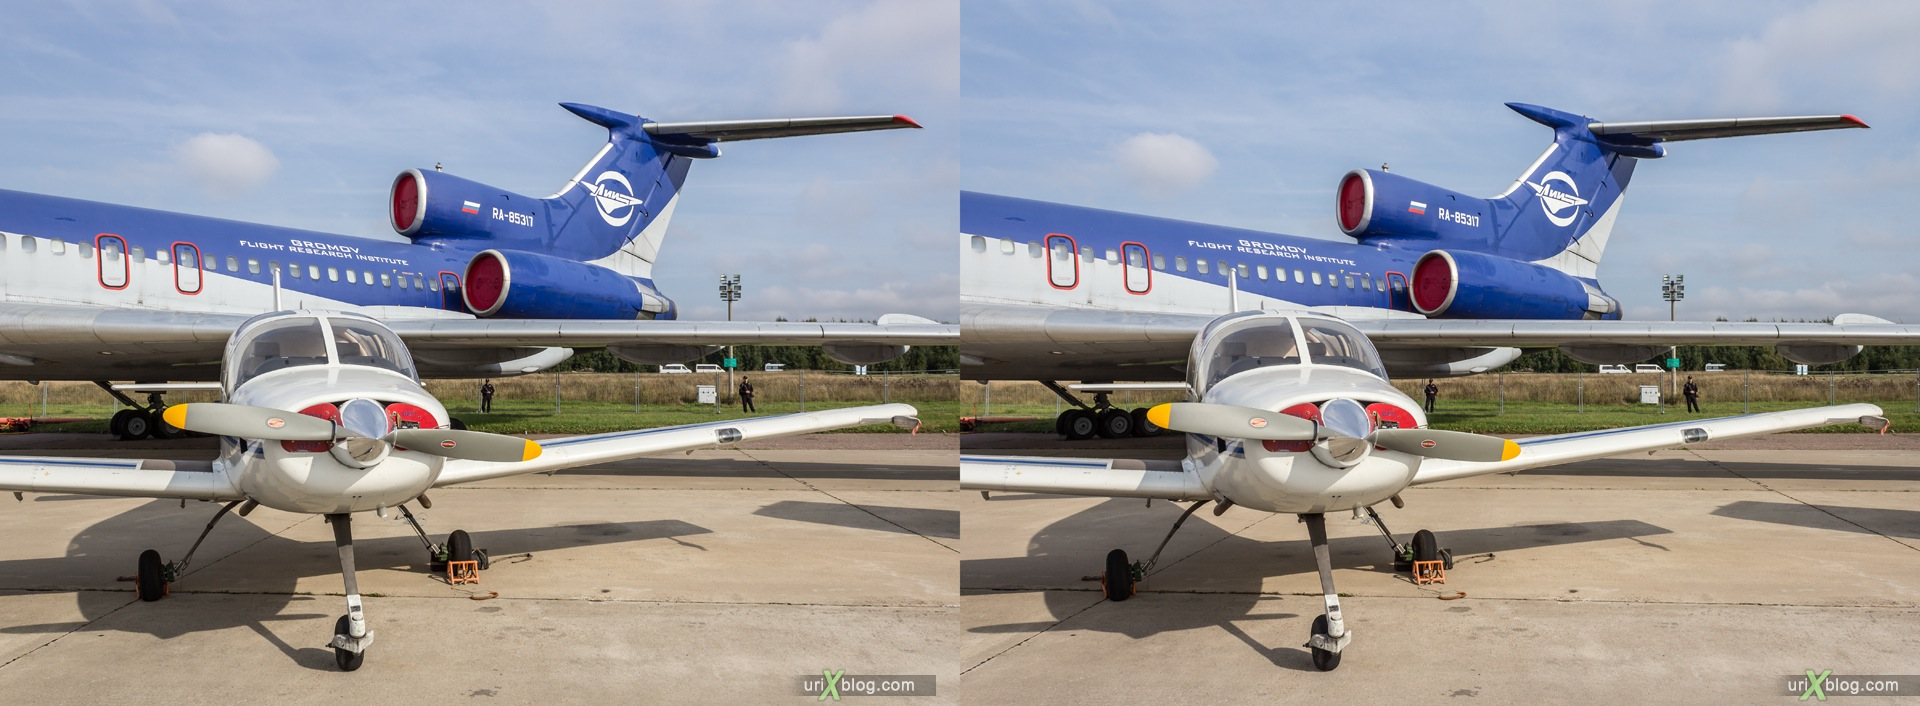 2013, Il-103, MAKS, International Aviation and Space Salon, Russia, Ramenskoye airfield, airplane, 3D, stereo pair, cross-eyed, crossview, cross view stereo pair, stereoscopic